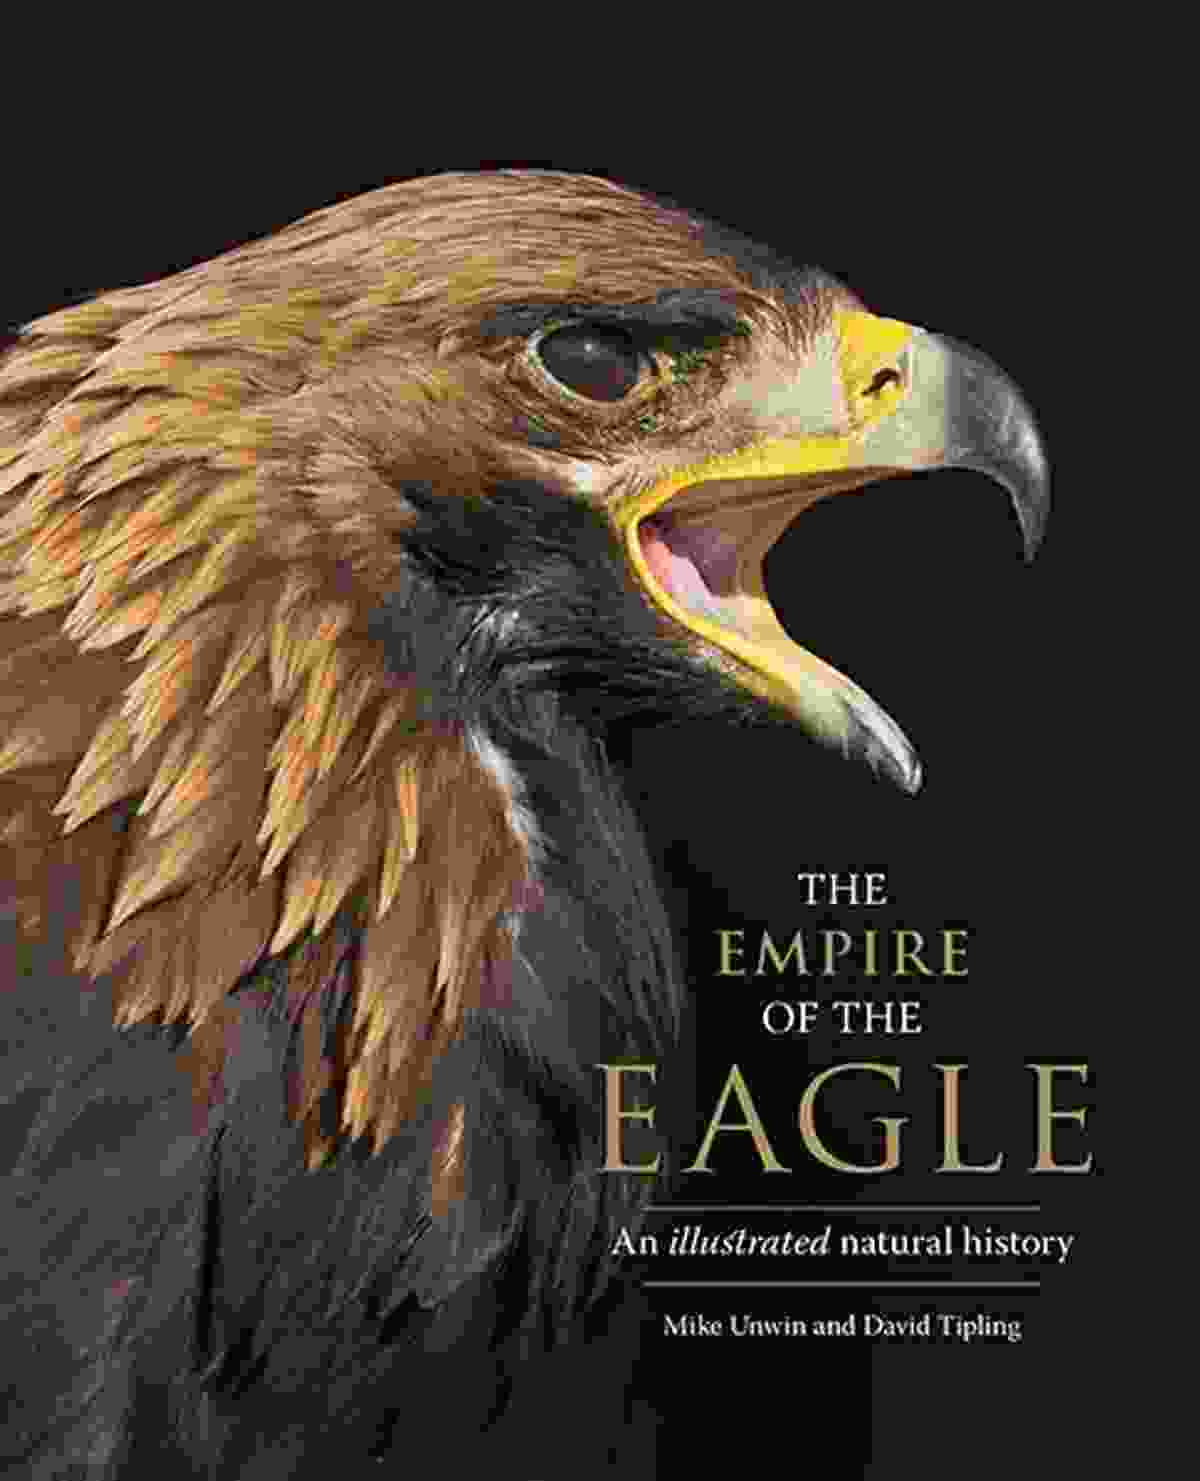 The Empire of the Eagle: An Illustrated Natural History, by Mike Unwin and David Tipling, is published by Yale University Press.